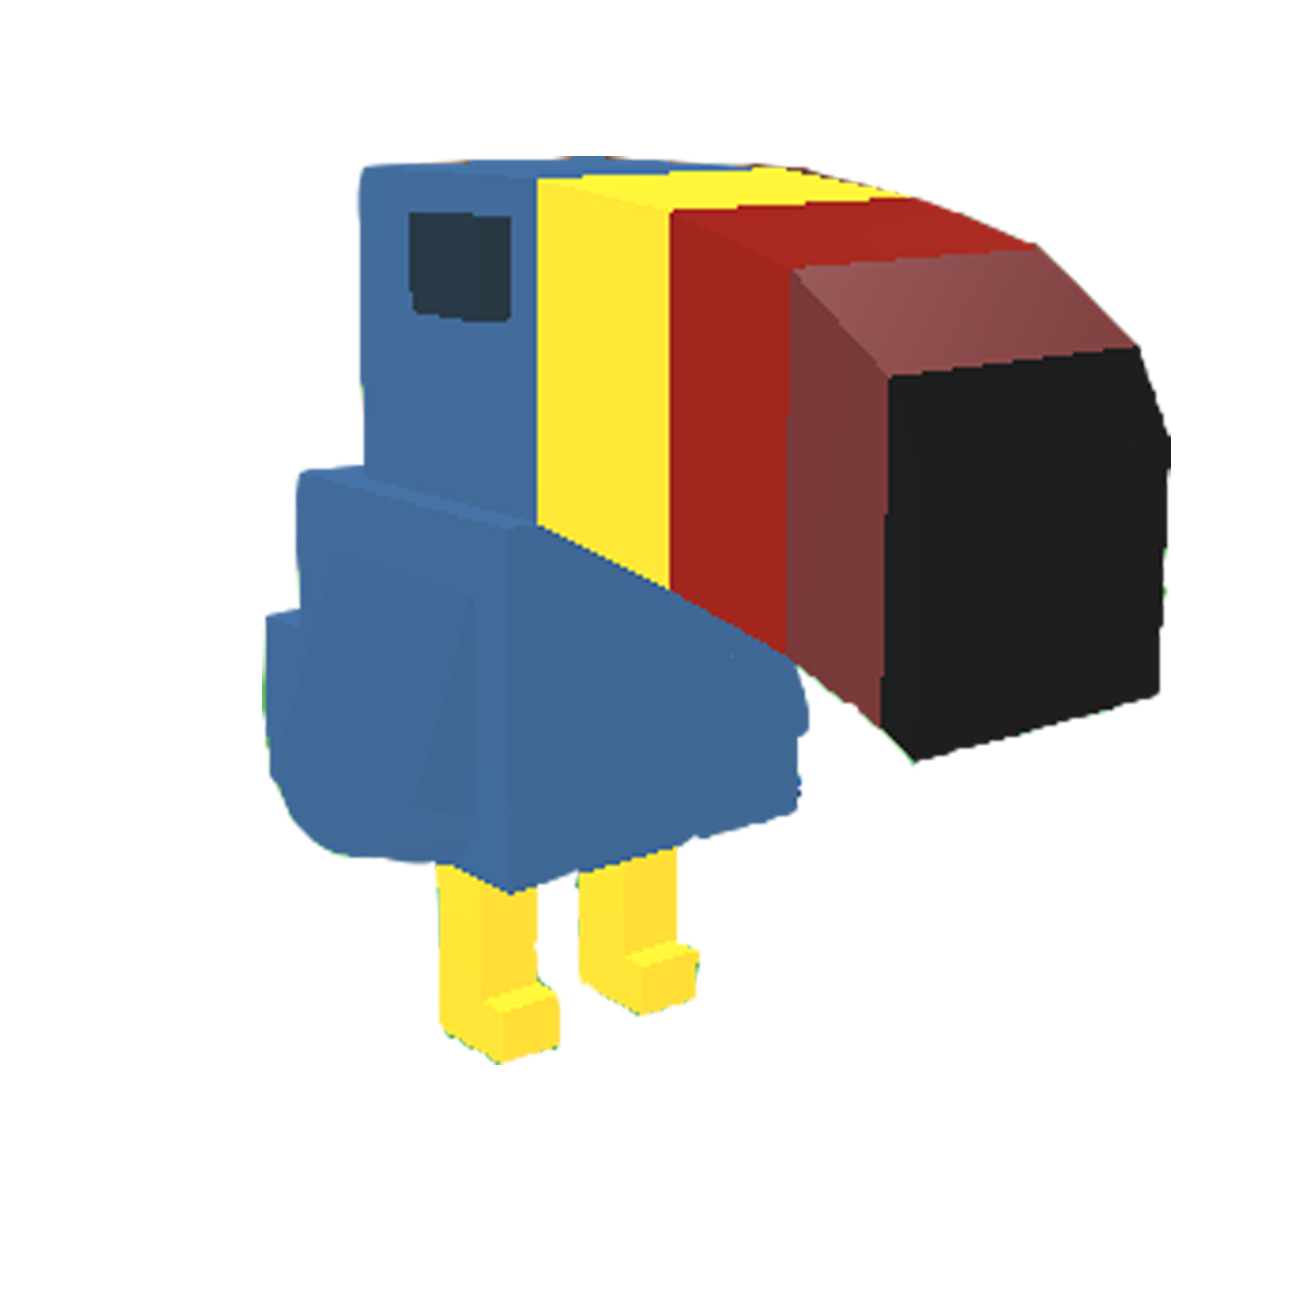 Toucan Feed Your Pets Roblox Wiki Fandom Powered By Wikia